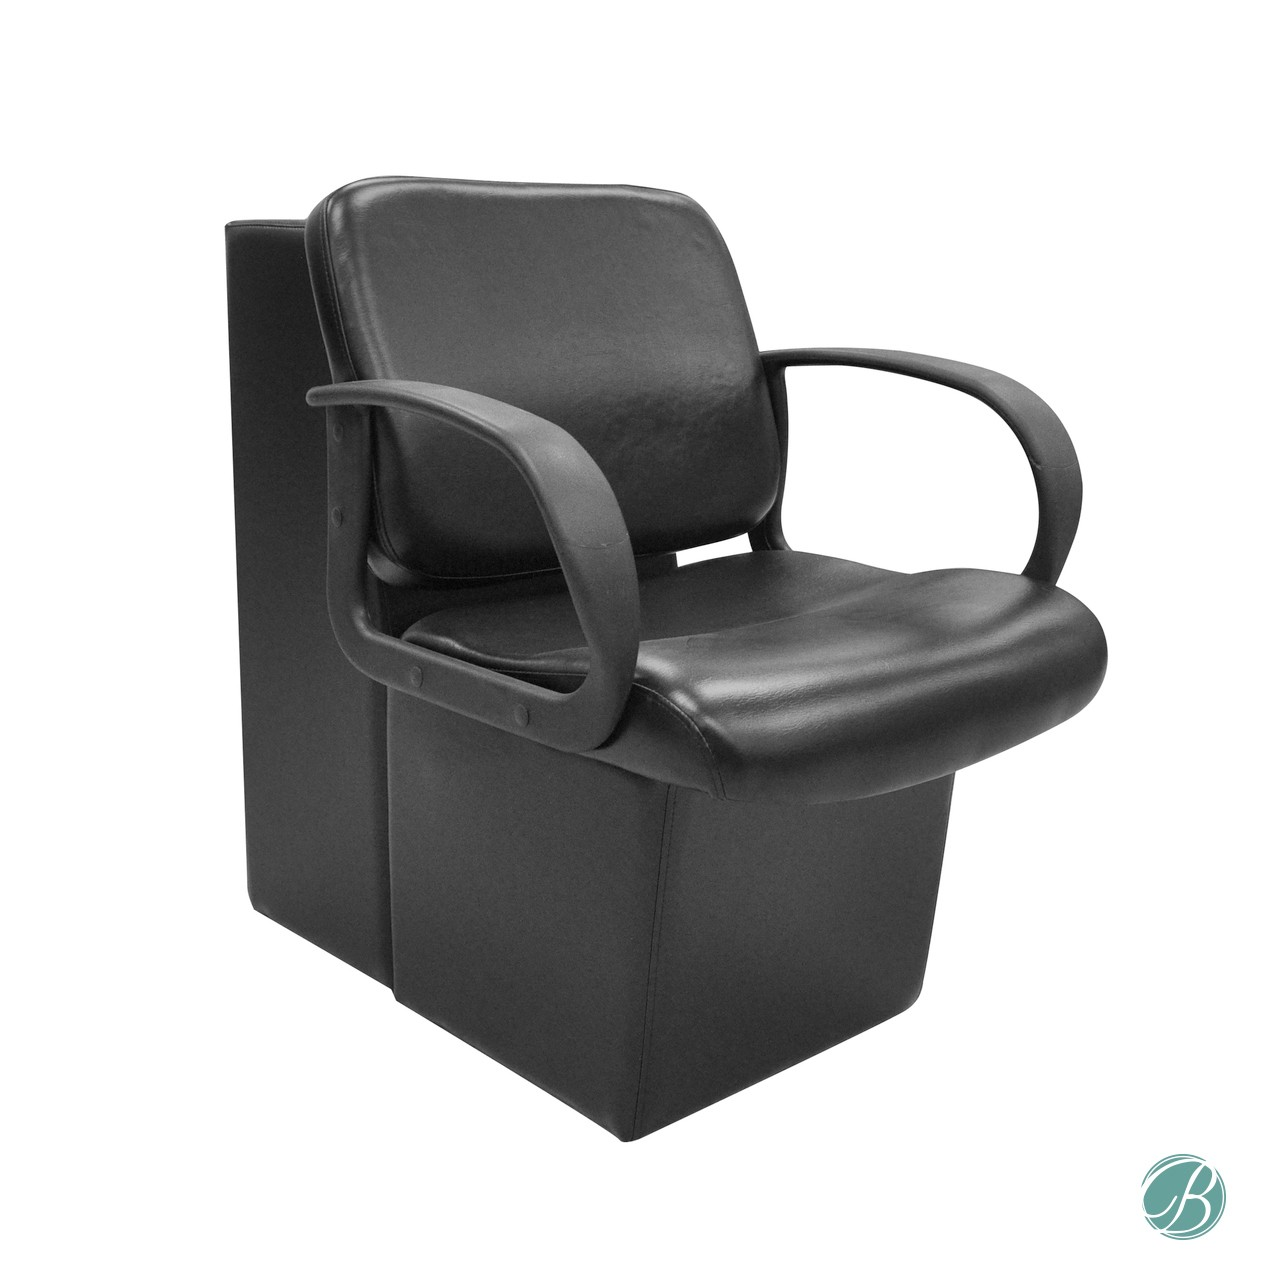 dryer chairs salon chairo sopa aegean decor facilitate outstanding hair drying these days many wholesale equipment stores offer for salons the are available in different styles and colors